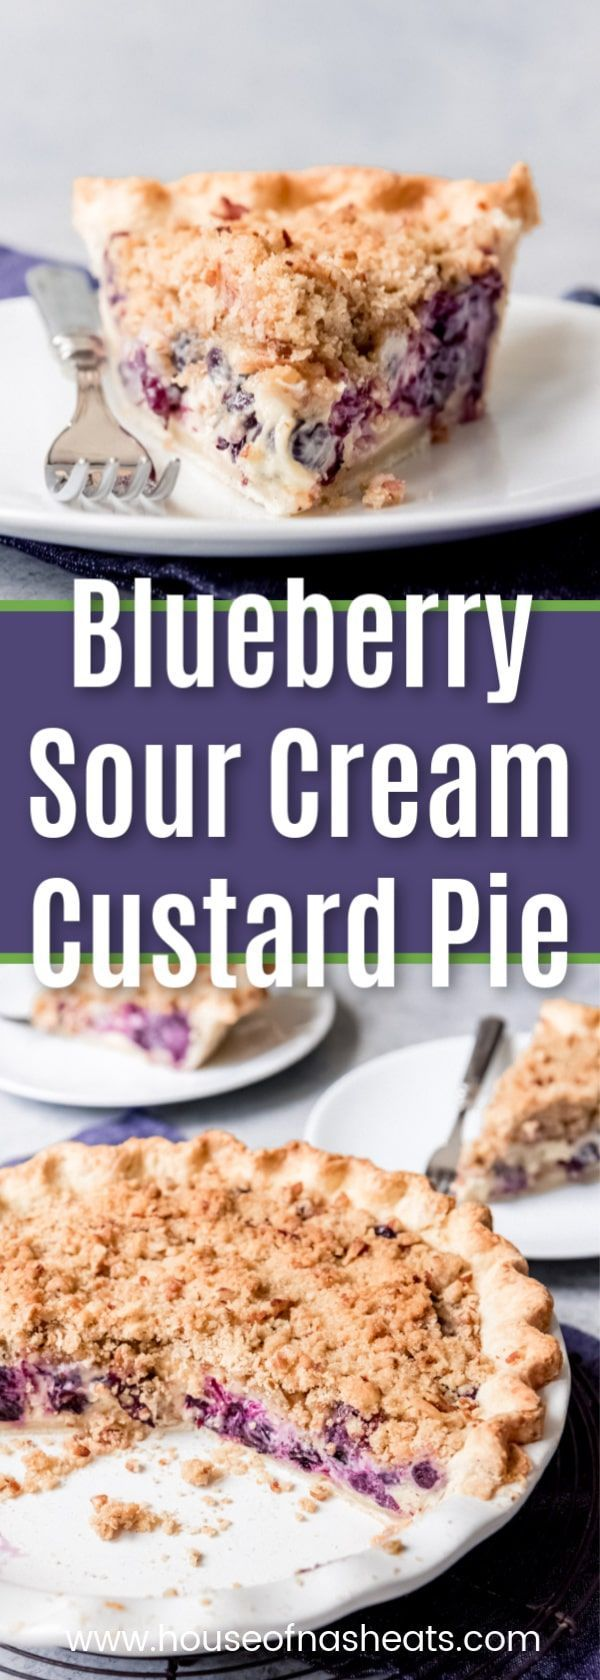 Blueberry Custard Pie Juicy fresh blueberries, creamy sour cream custard, buttery streusel crumble topping with chopped pecans, all in a flaky crust - this Blueberry Sour Cream Custard Pie won the